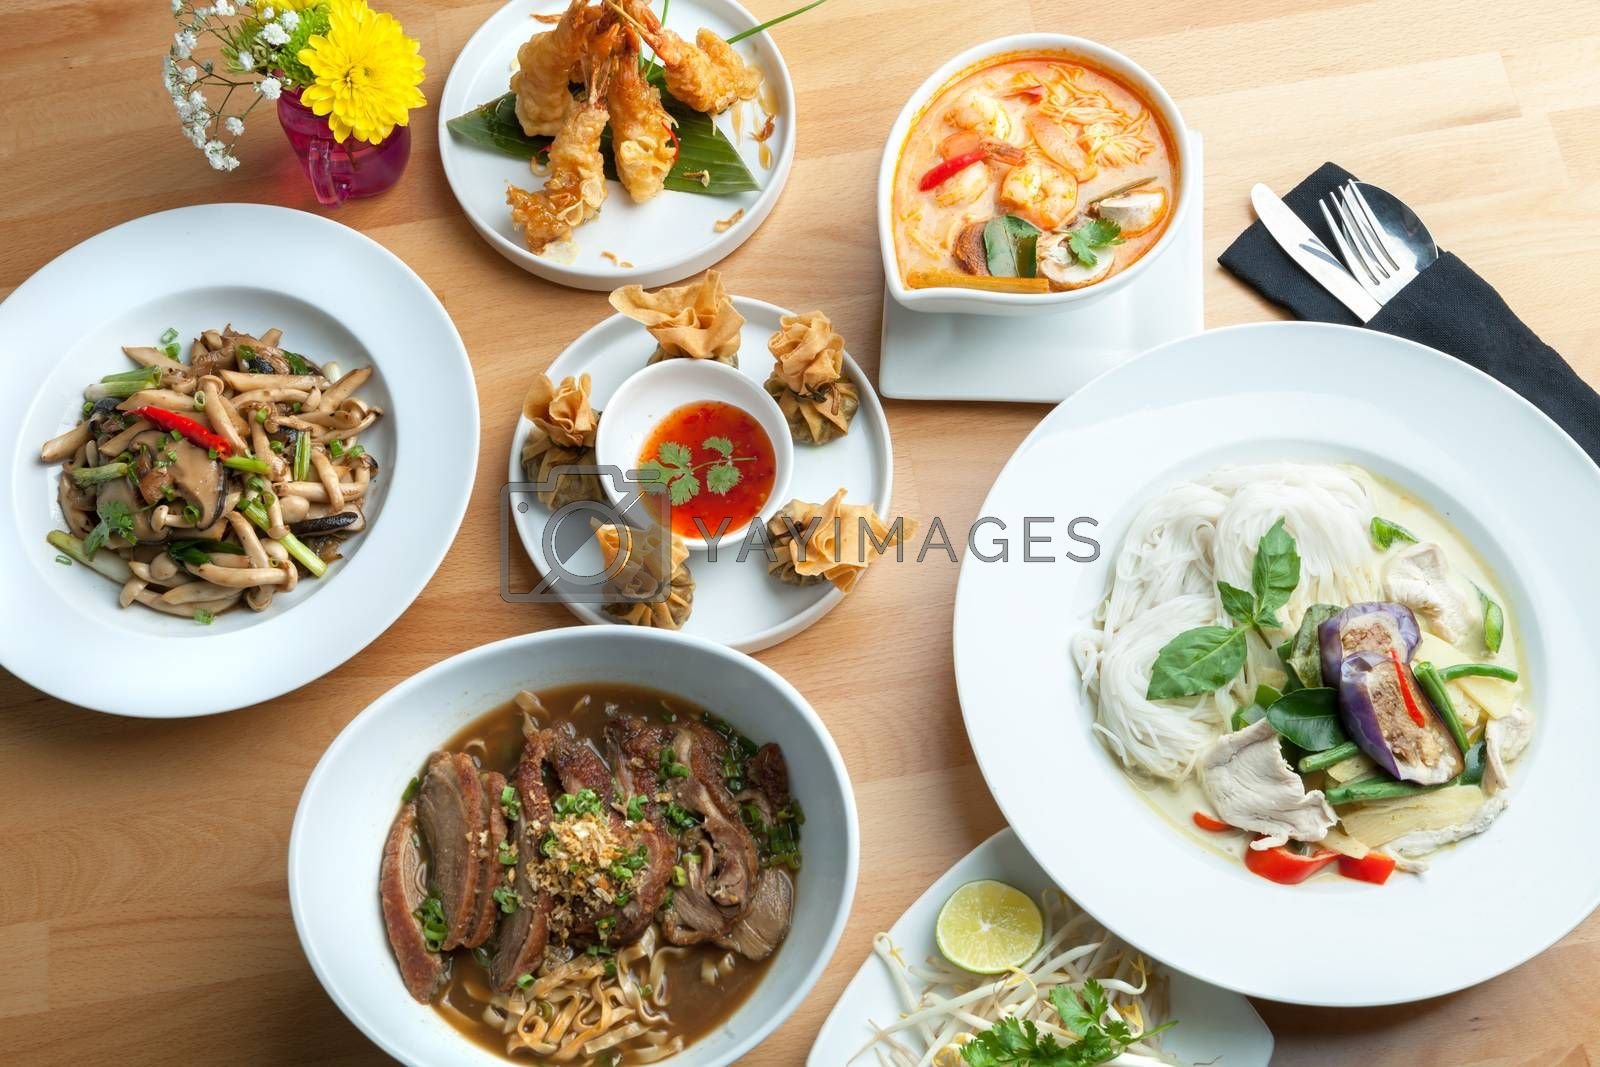 Variety of authentic Thai cuisine curries and stir fry dishes.  Shallow depth of field.